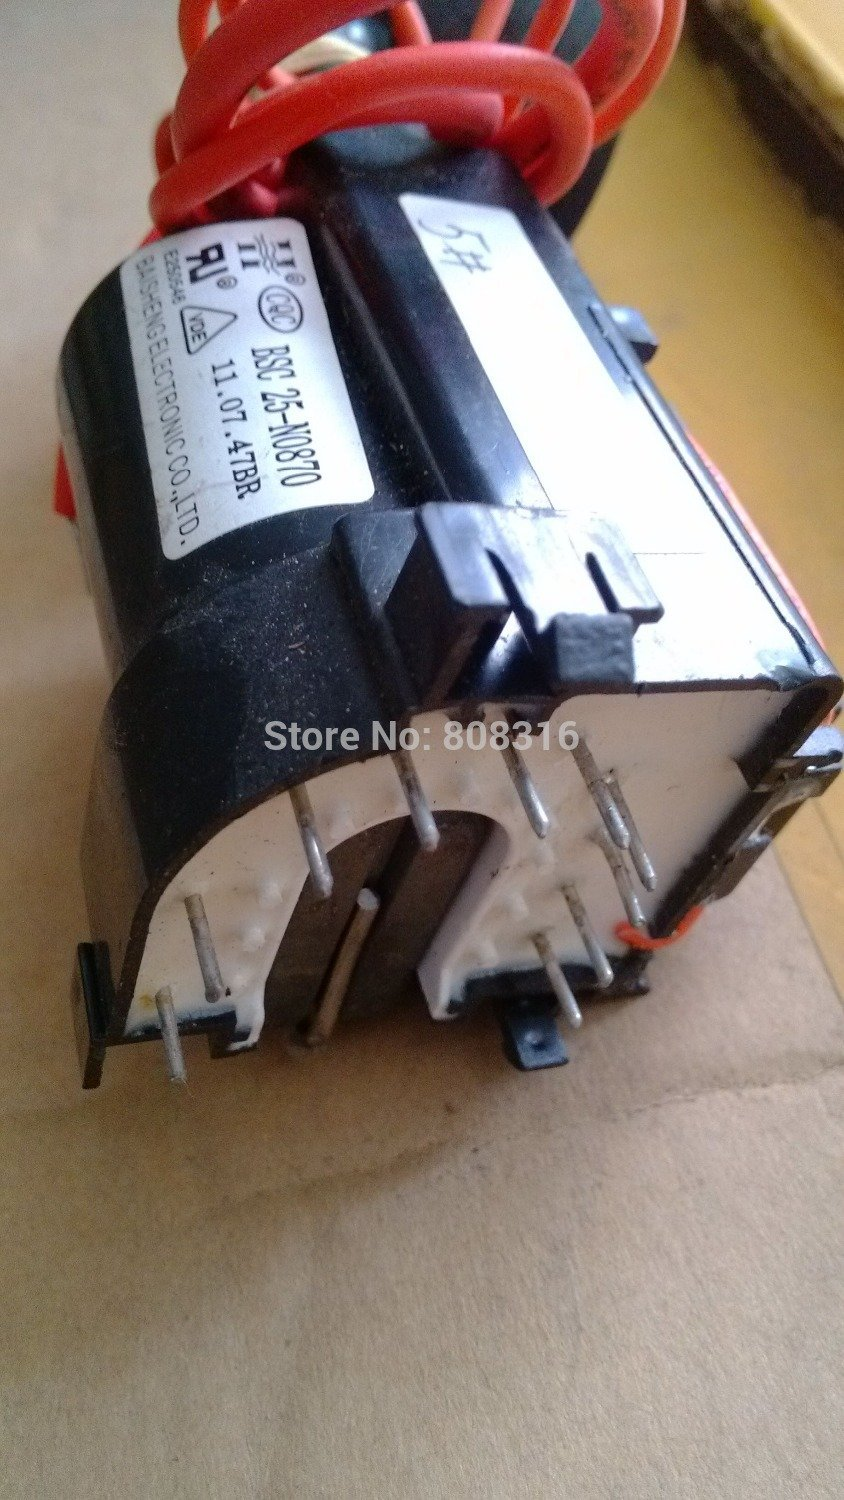 For BSC25-N0870 flyback transformer for CRT television